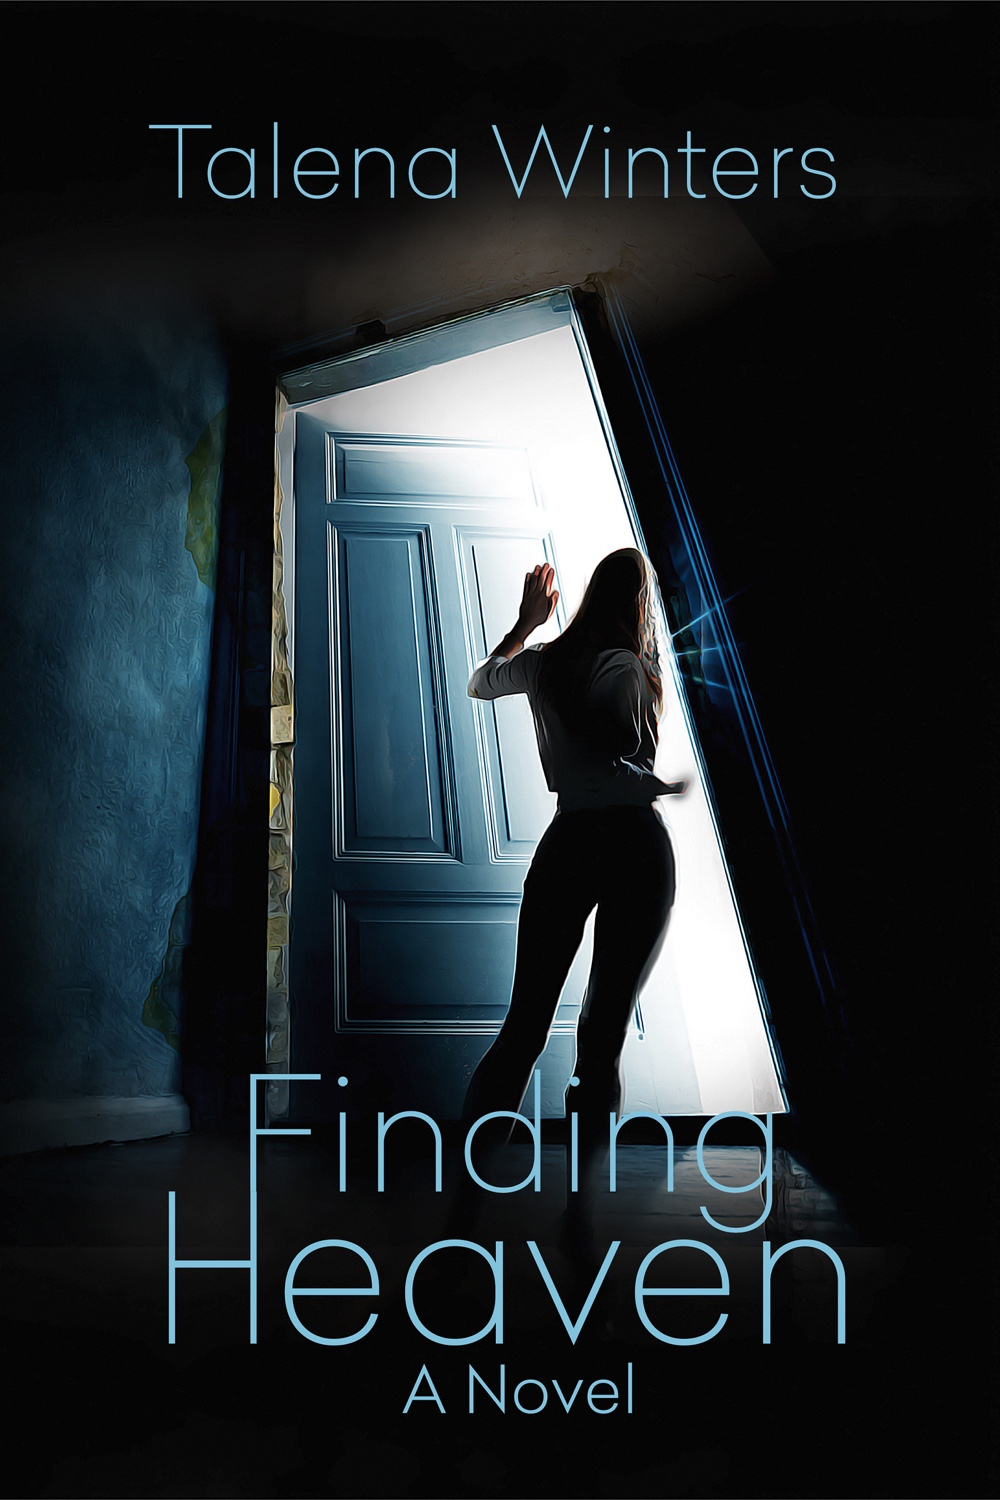 """Finding Heaven"" by Talena Winters is a novel about choosing to heal from the hurts of abuse."